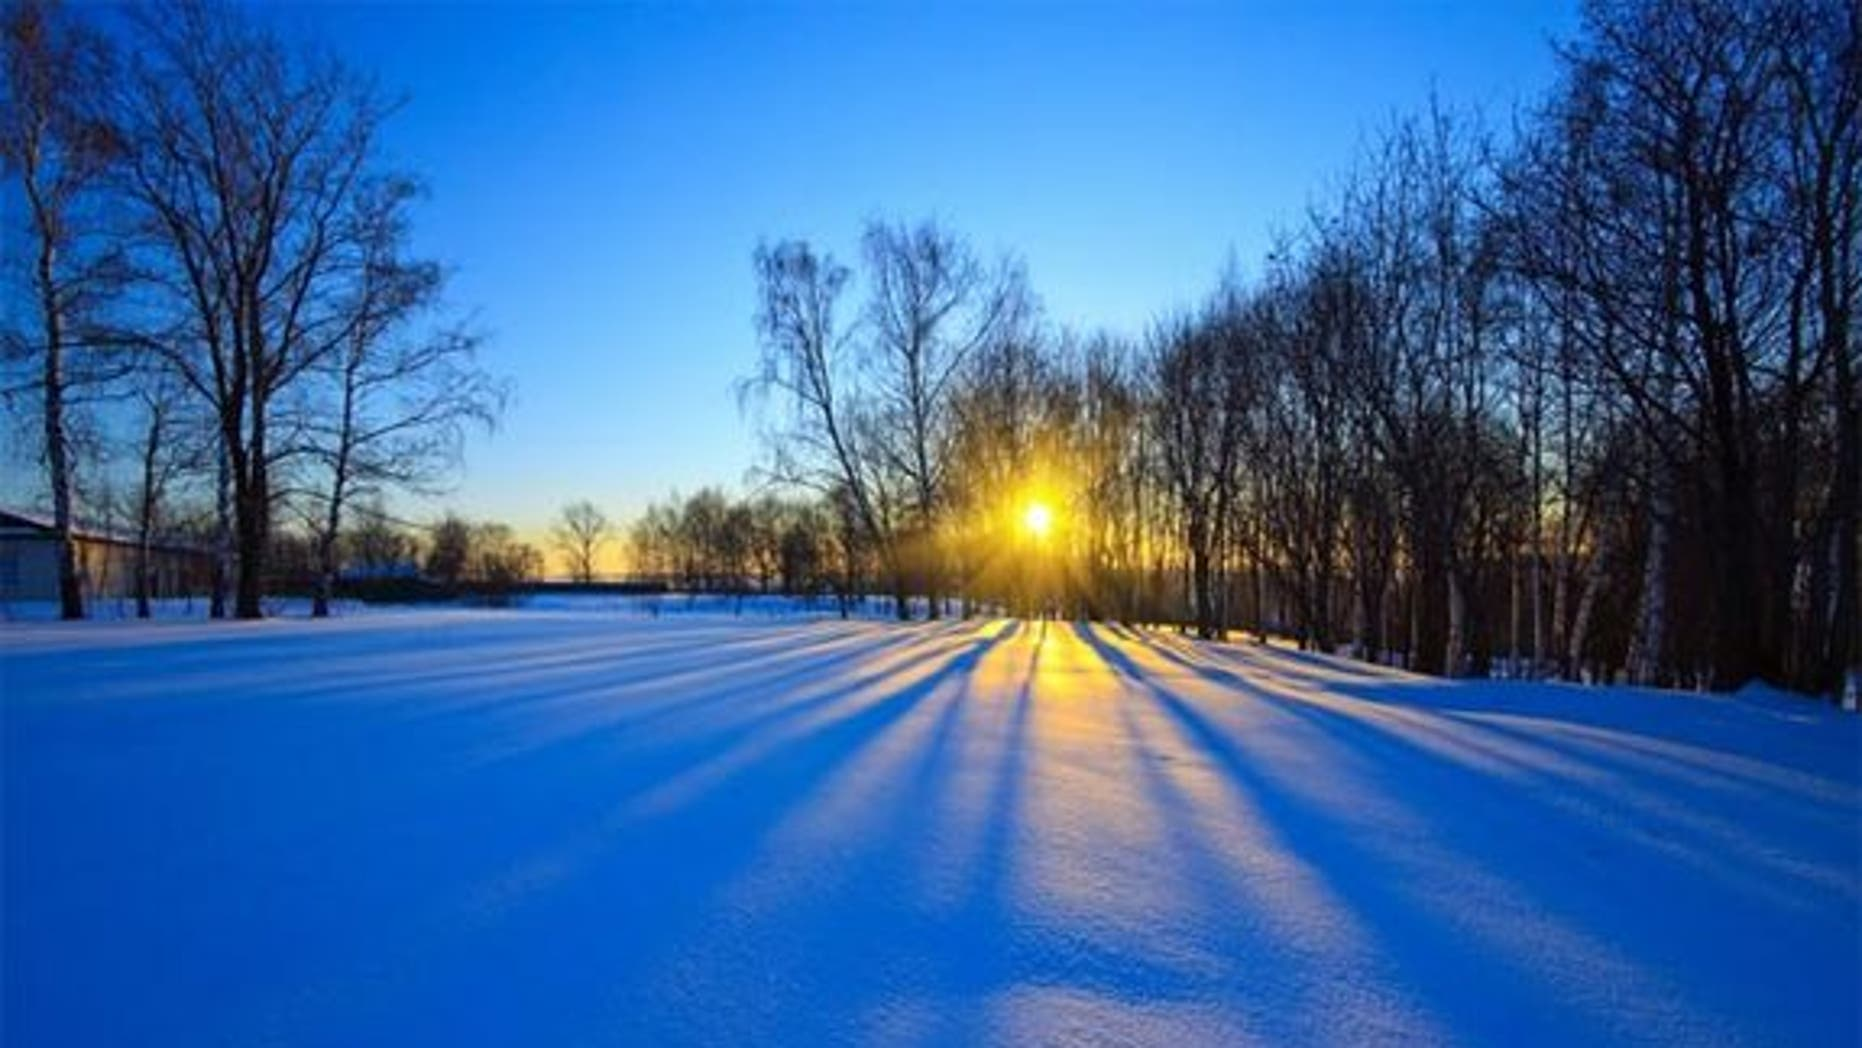 The winter solstice marks the shortest day of the year, when the sun is at its lowest point in the sky in the Northern Hemisphere.